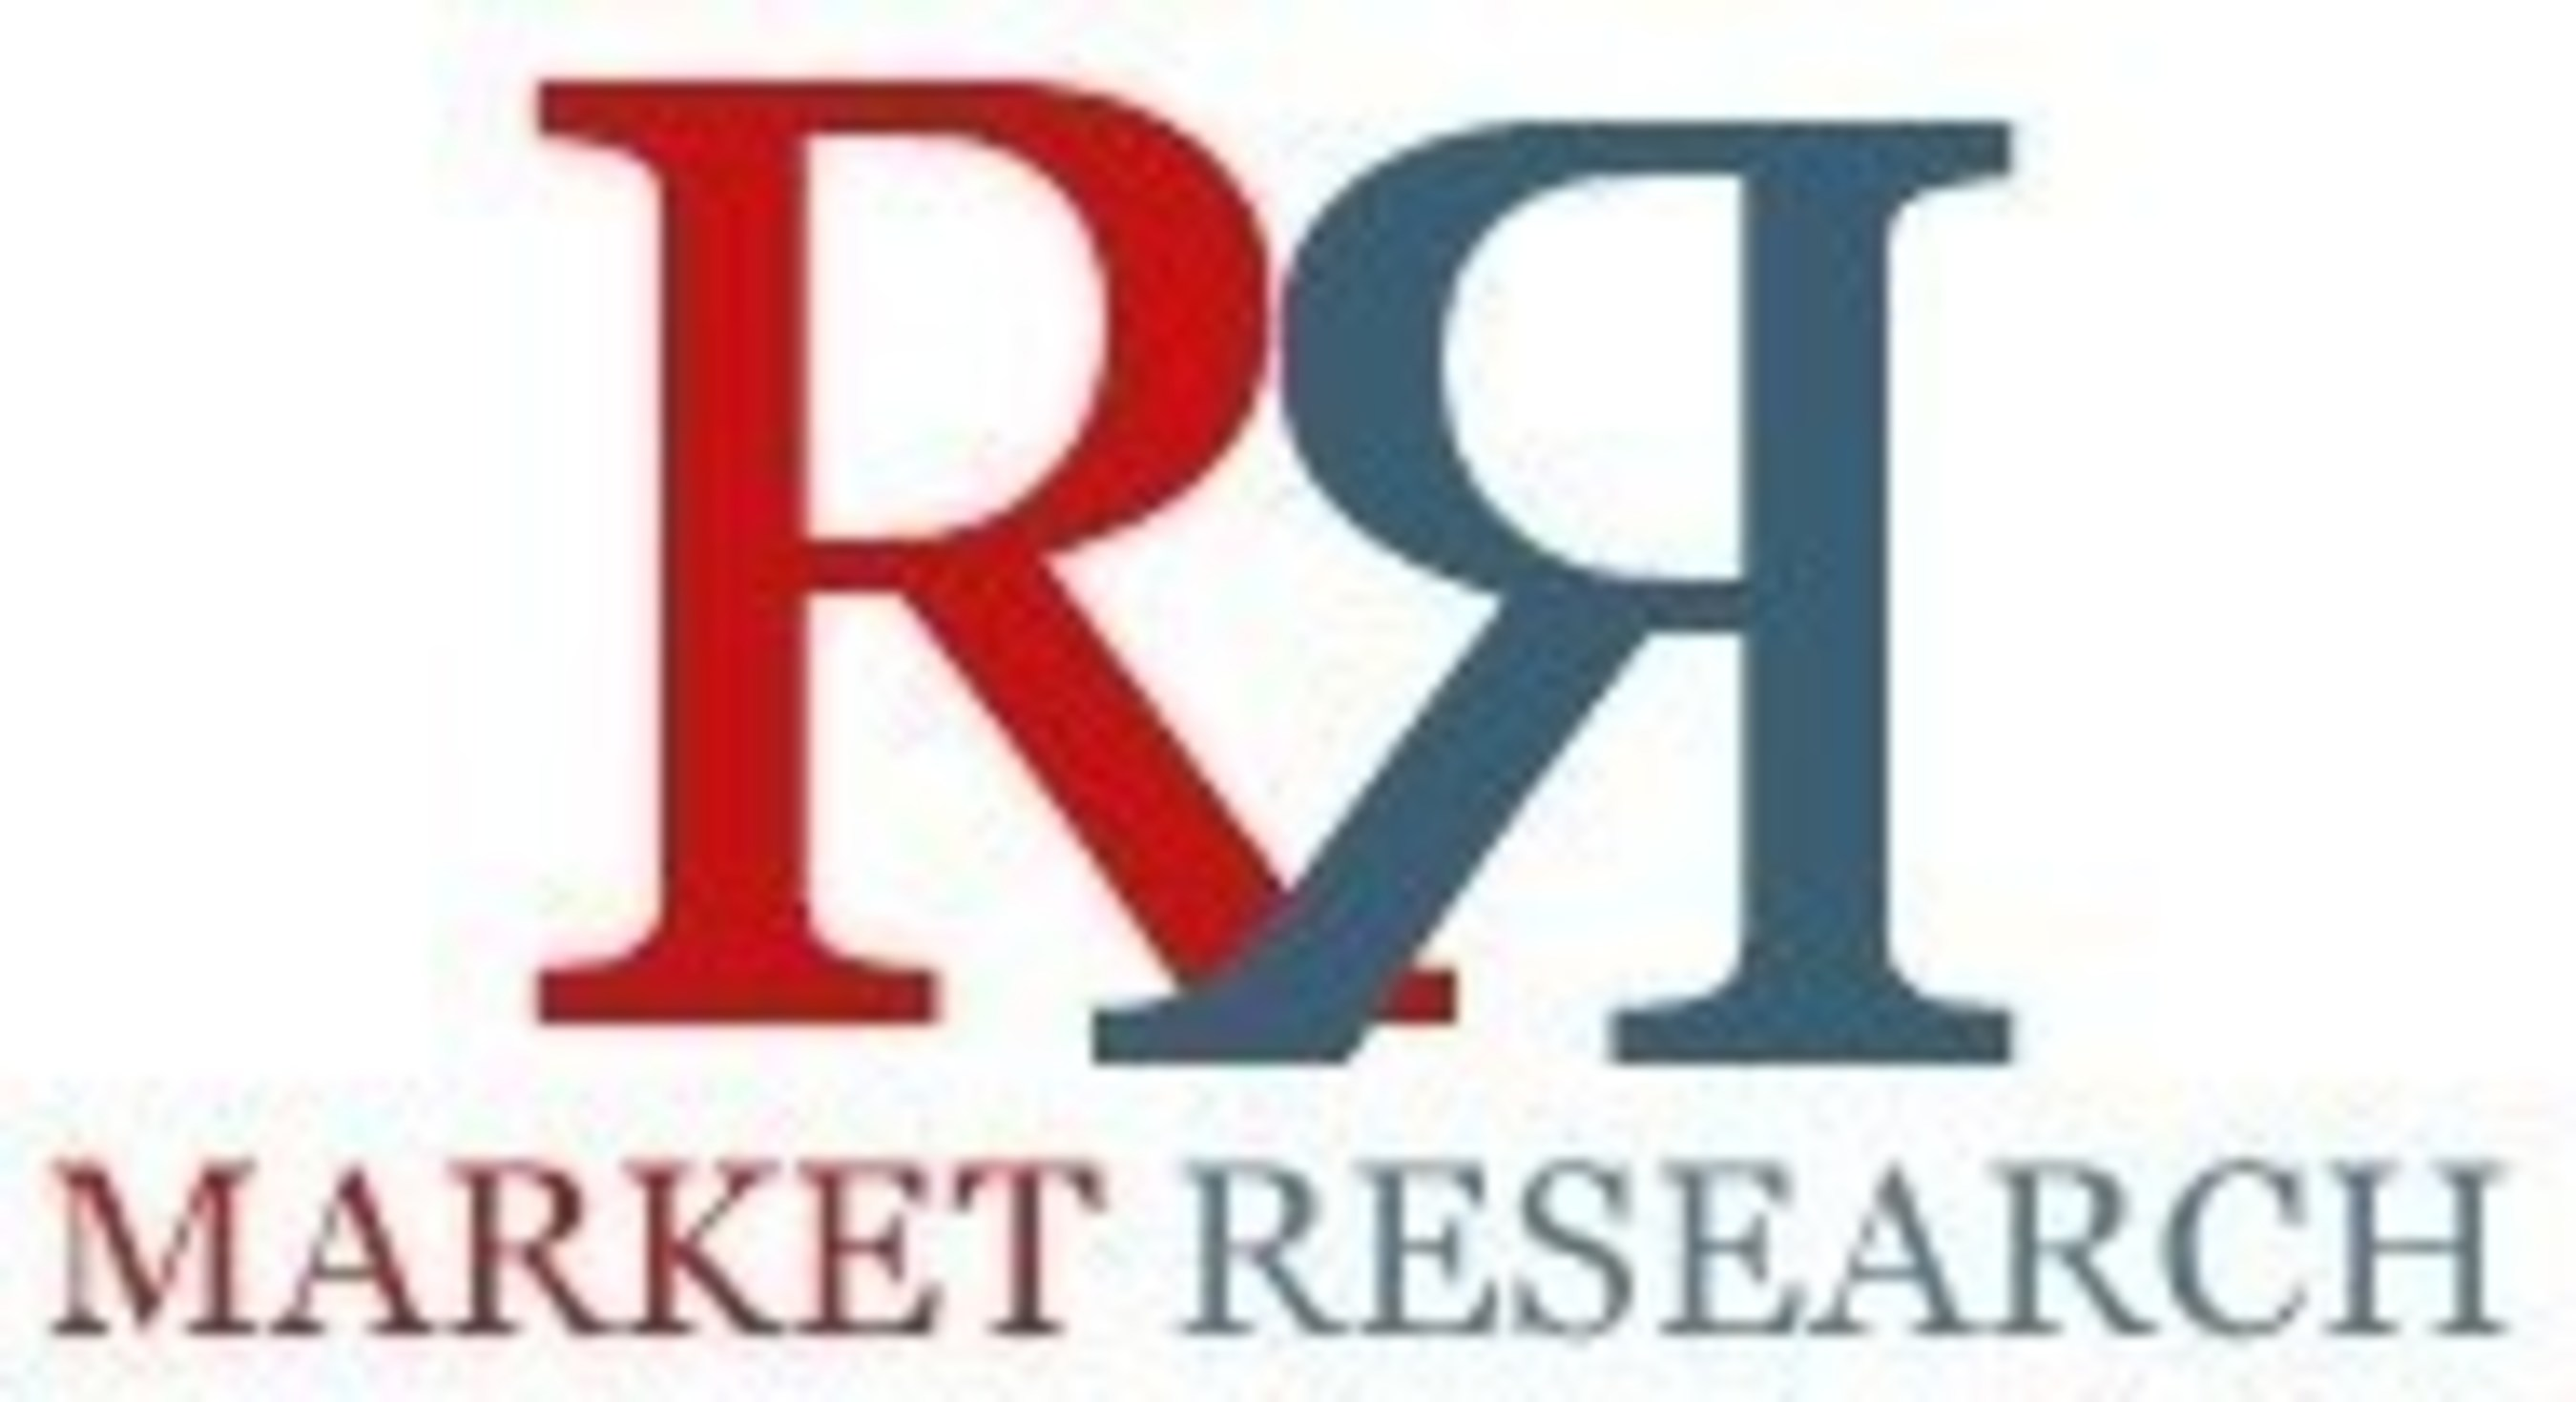 Lecture Capture Solutions Market to Grow at 21.77% CAGR Driven by Demand for Distance Education to 2020